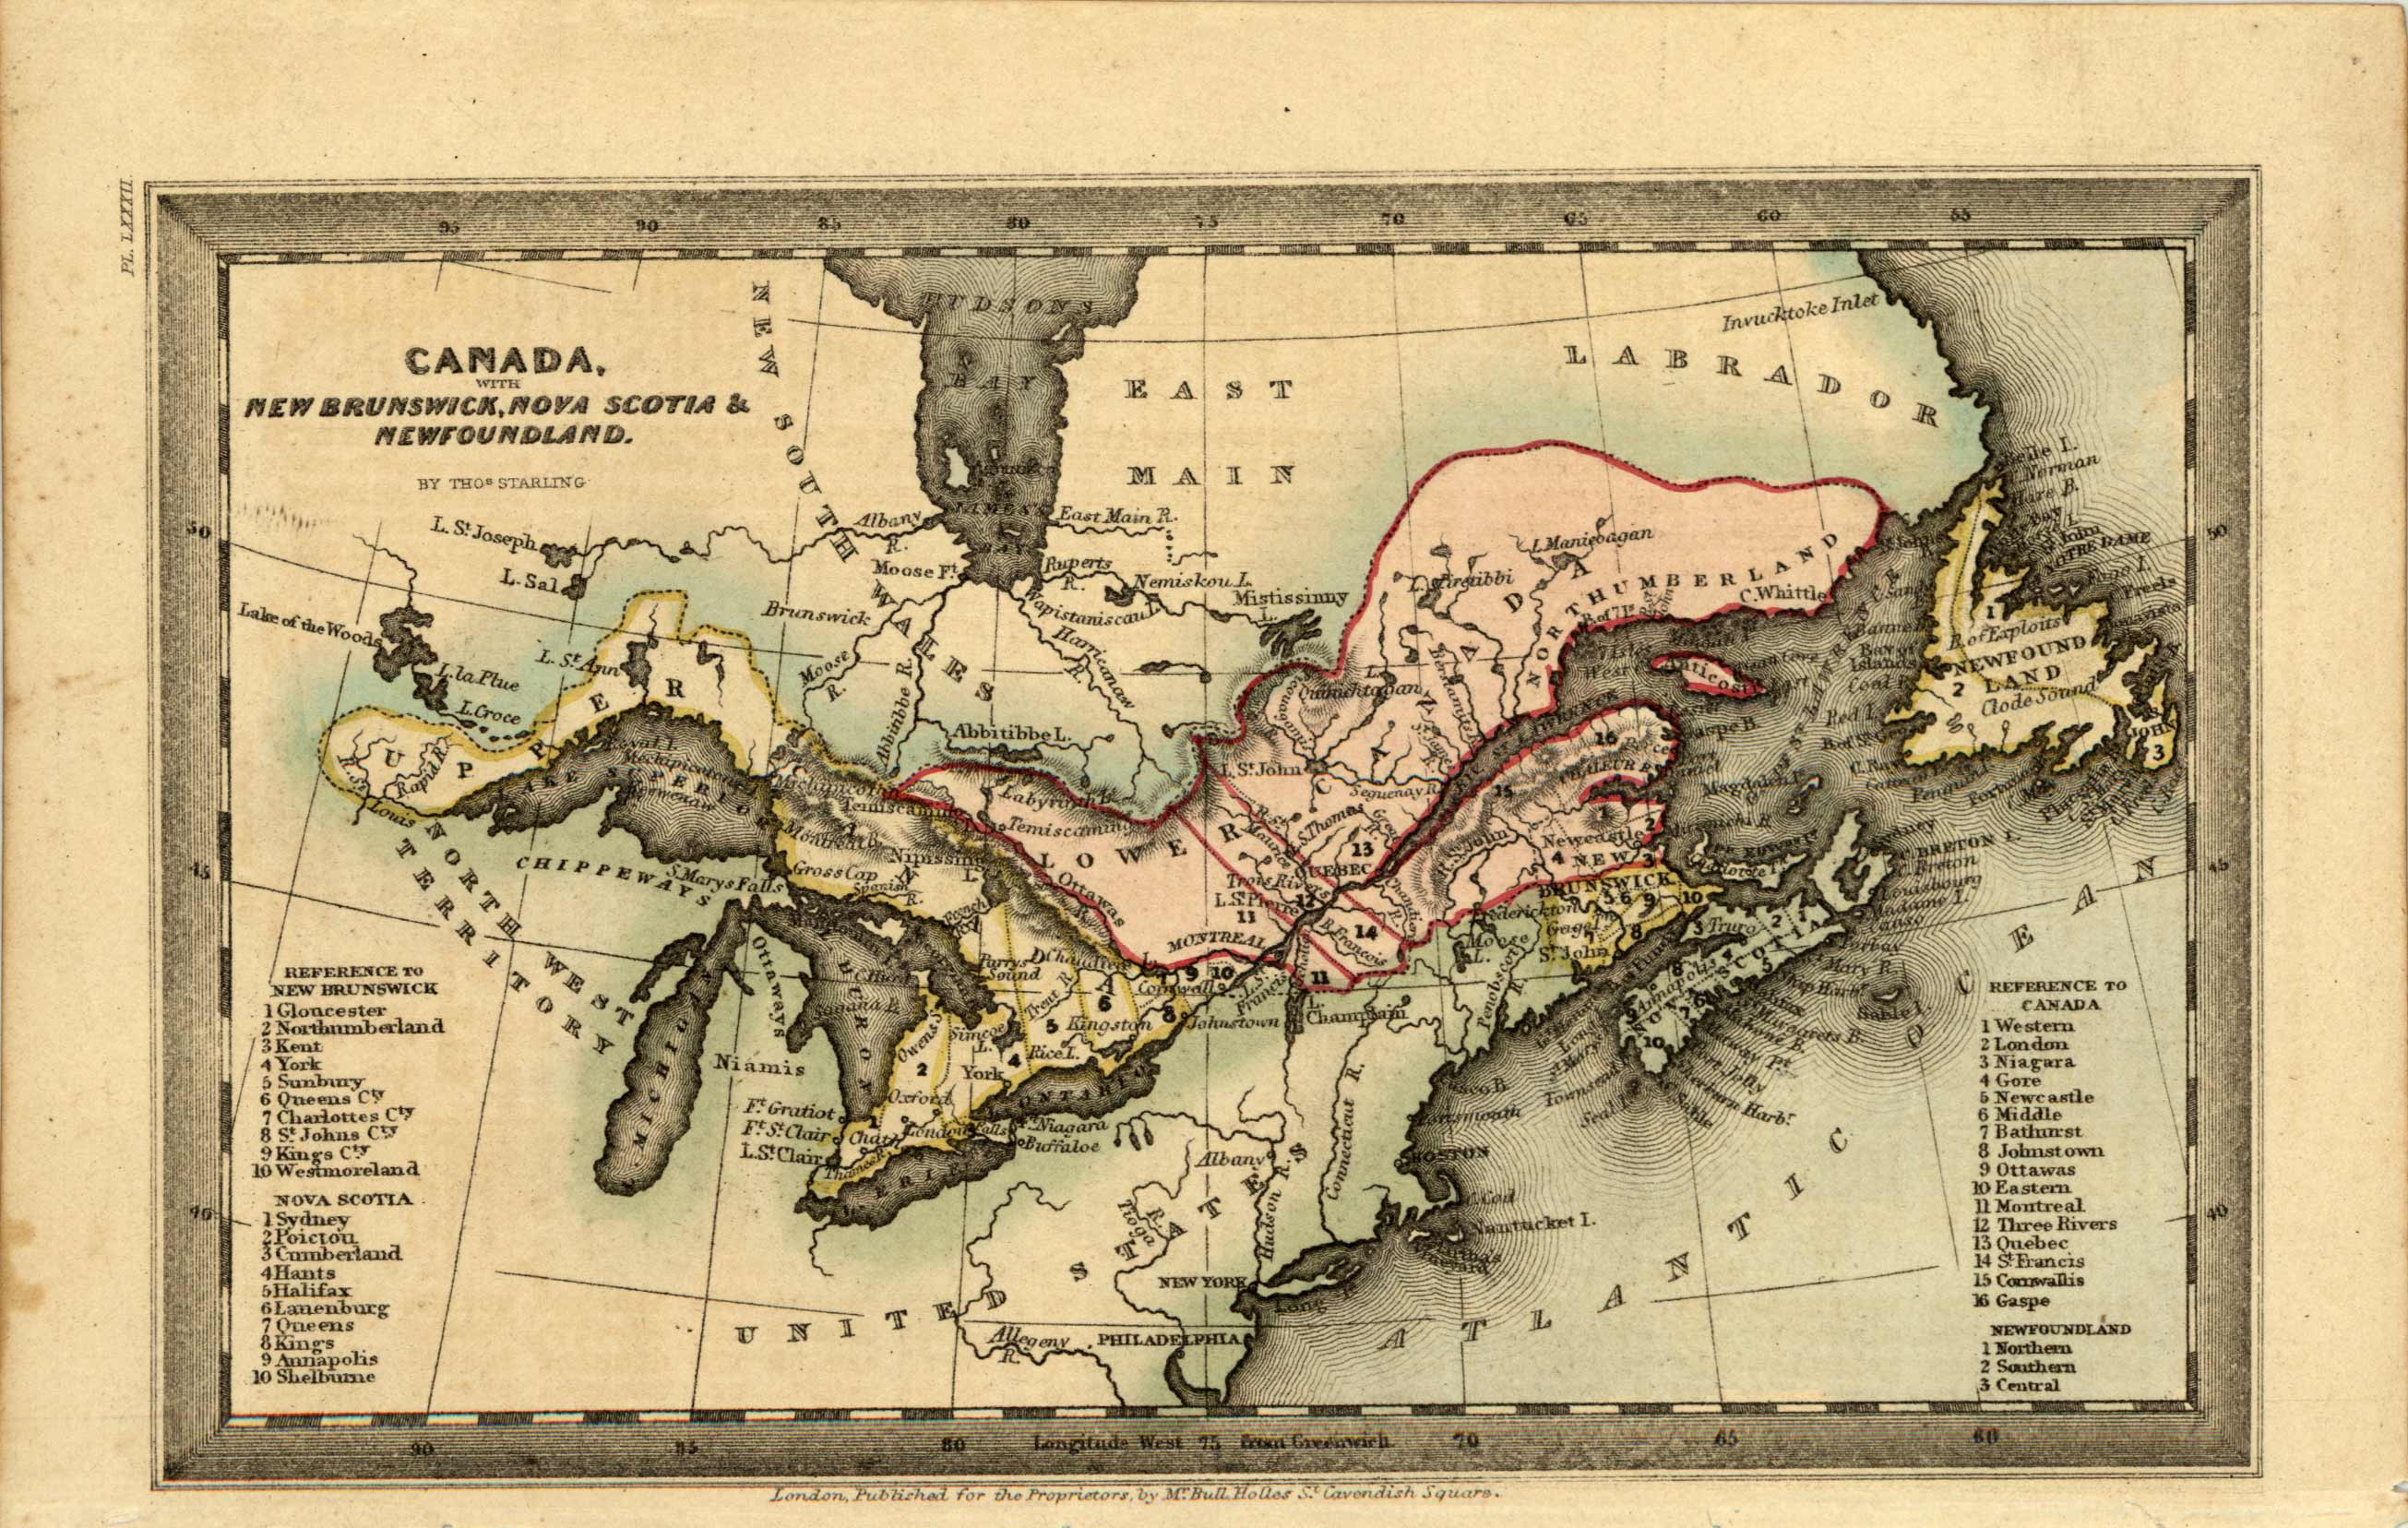 Canada with New Brunswick